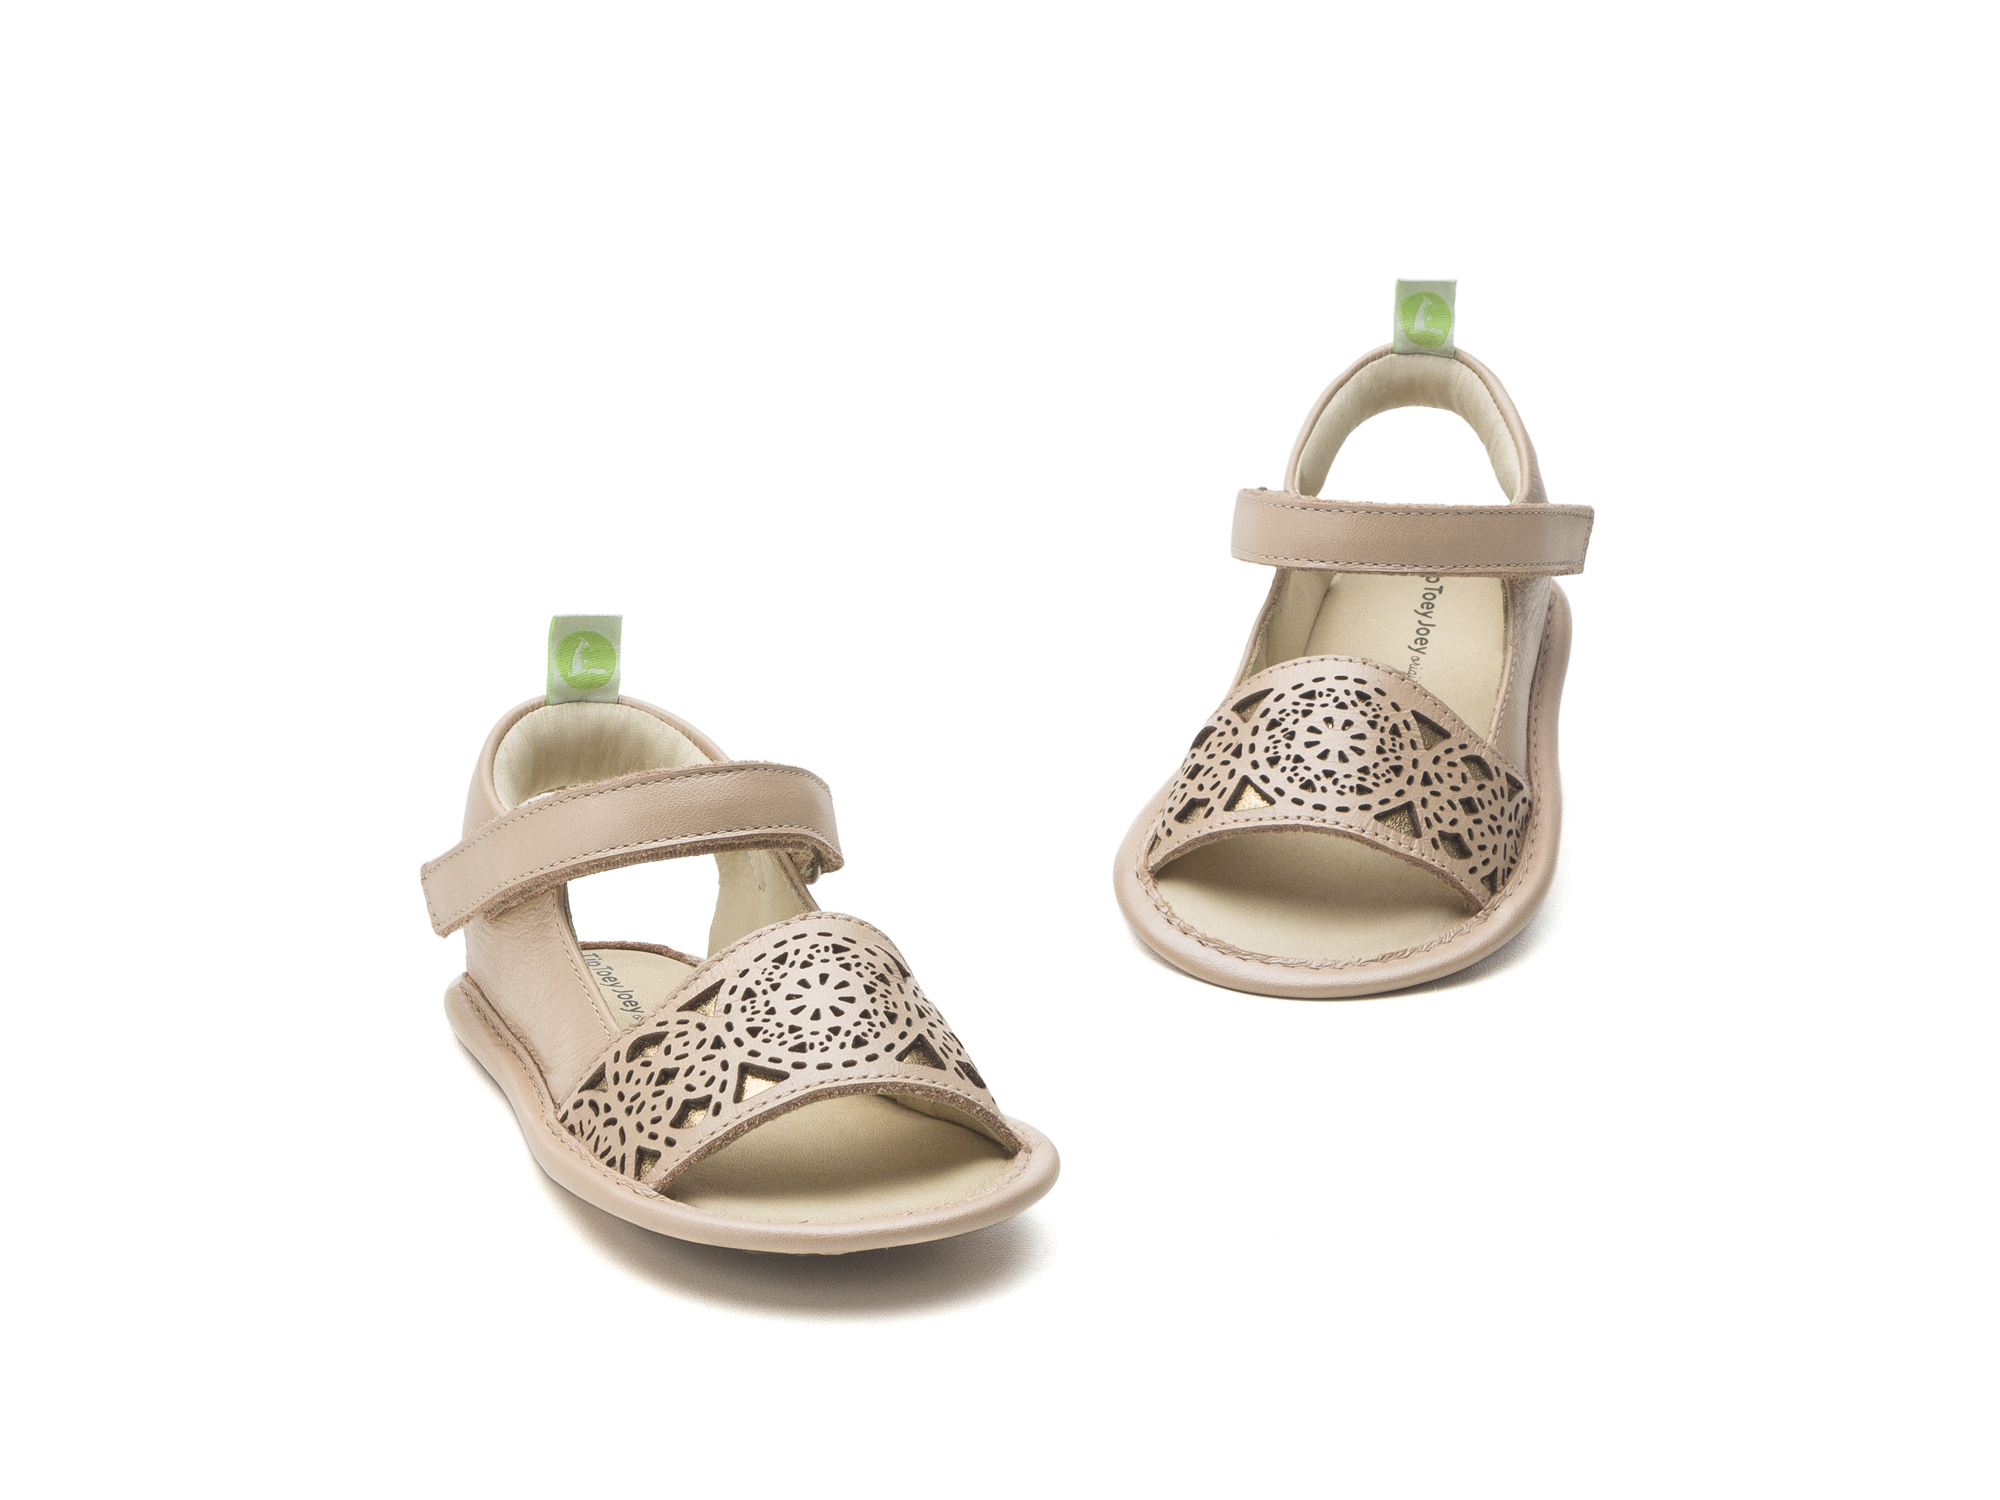 Sandal Mandaly Pink Perl/ Golden Shine Baby for ages 0 to 2 years - 2